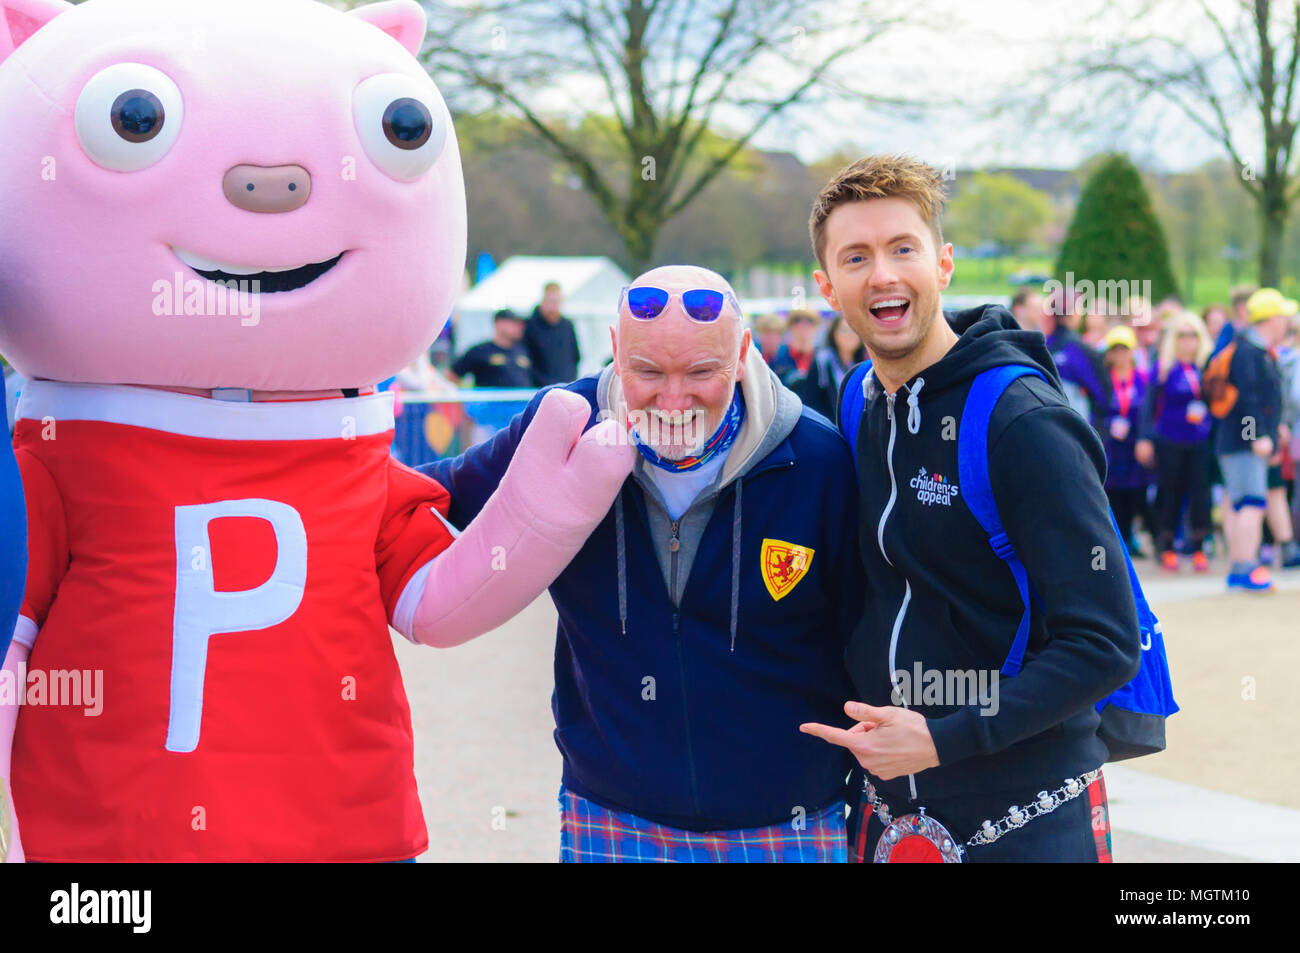 Glasgow, Scotland, UK. 29th April, 2018. Kiltwalk Glasgow 2018, a charity event where walkers have three distances to choose from, a Mighty Stride (23 miles), a Big Stroll (14 miles) or the Wee Wander (6 miles). This year involved 10,000 walkers and raised two million pounds for 600 charities. Pictured Pigby, Sir Tom Hunter and Sean Batty. Credit: Skully/Alamy Live News - Stock Image